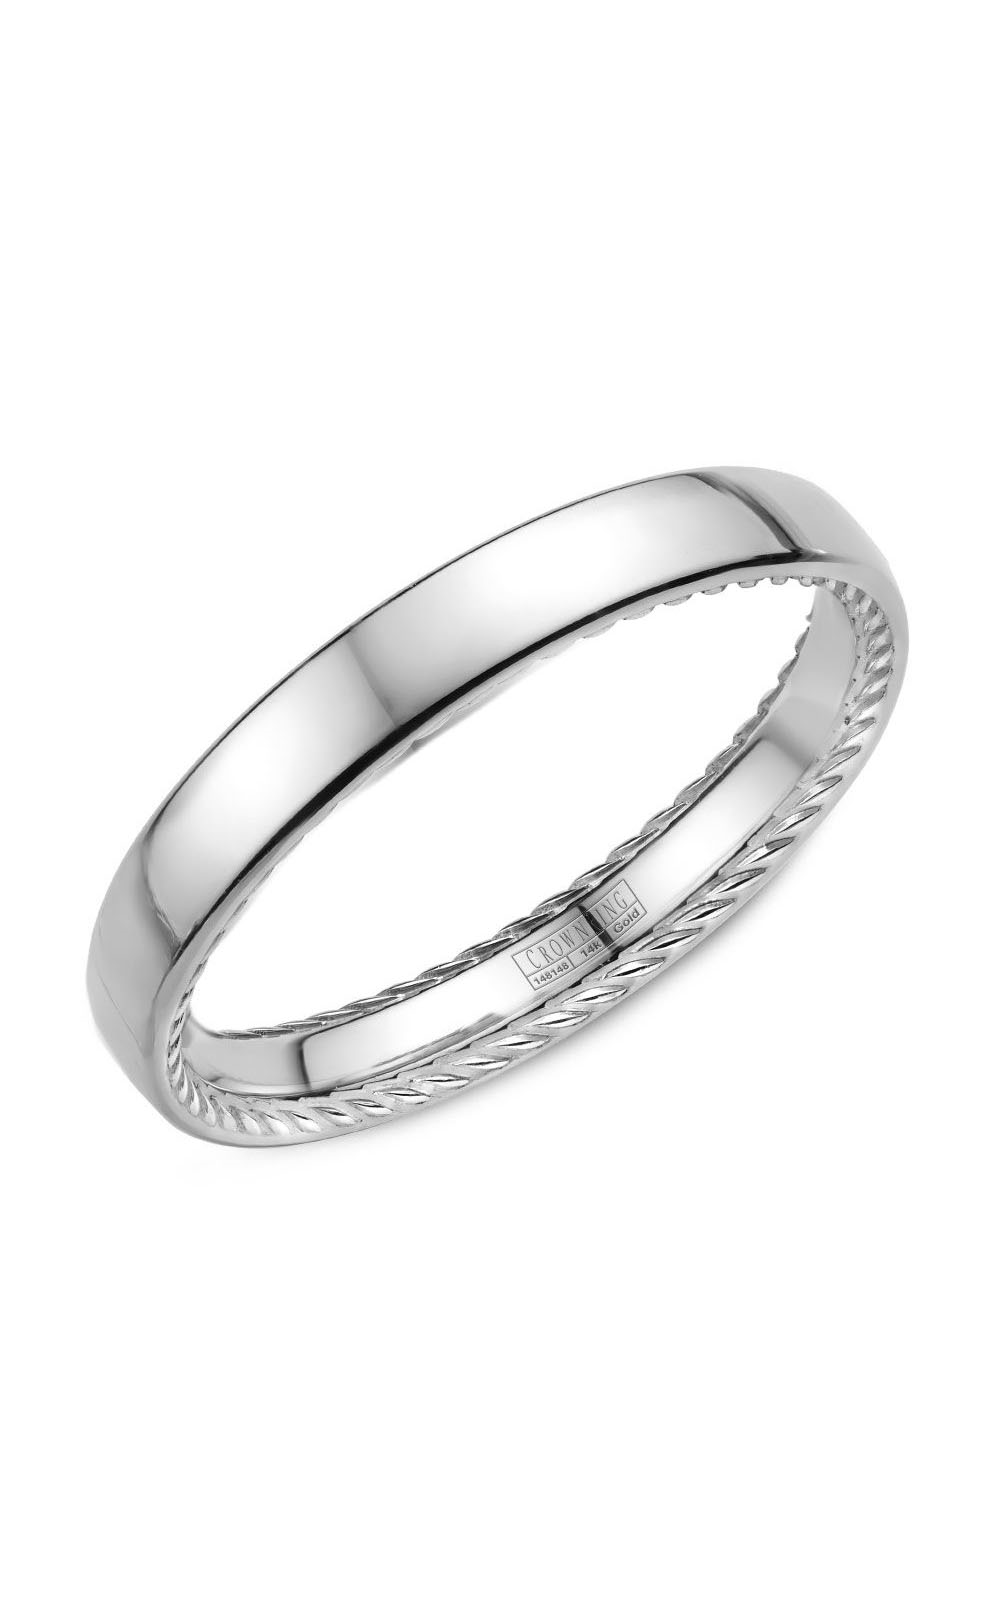 Crown Ring Men's Wedding Band WB-012R25W product image